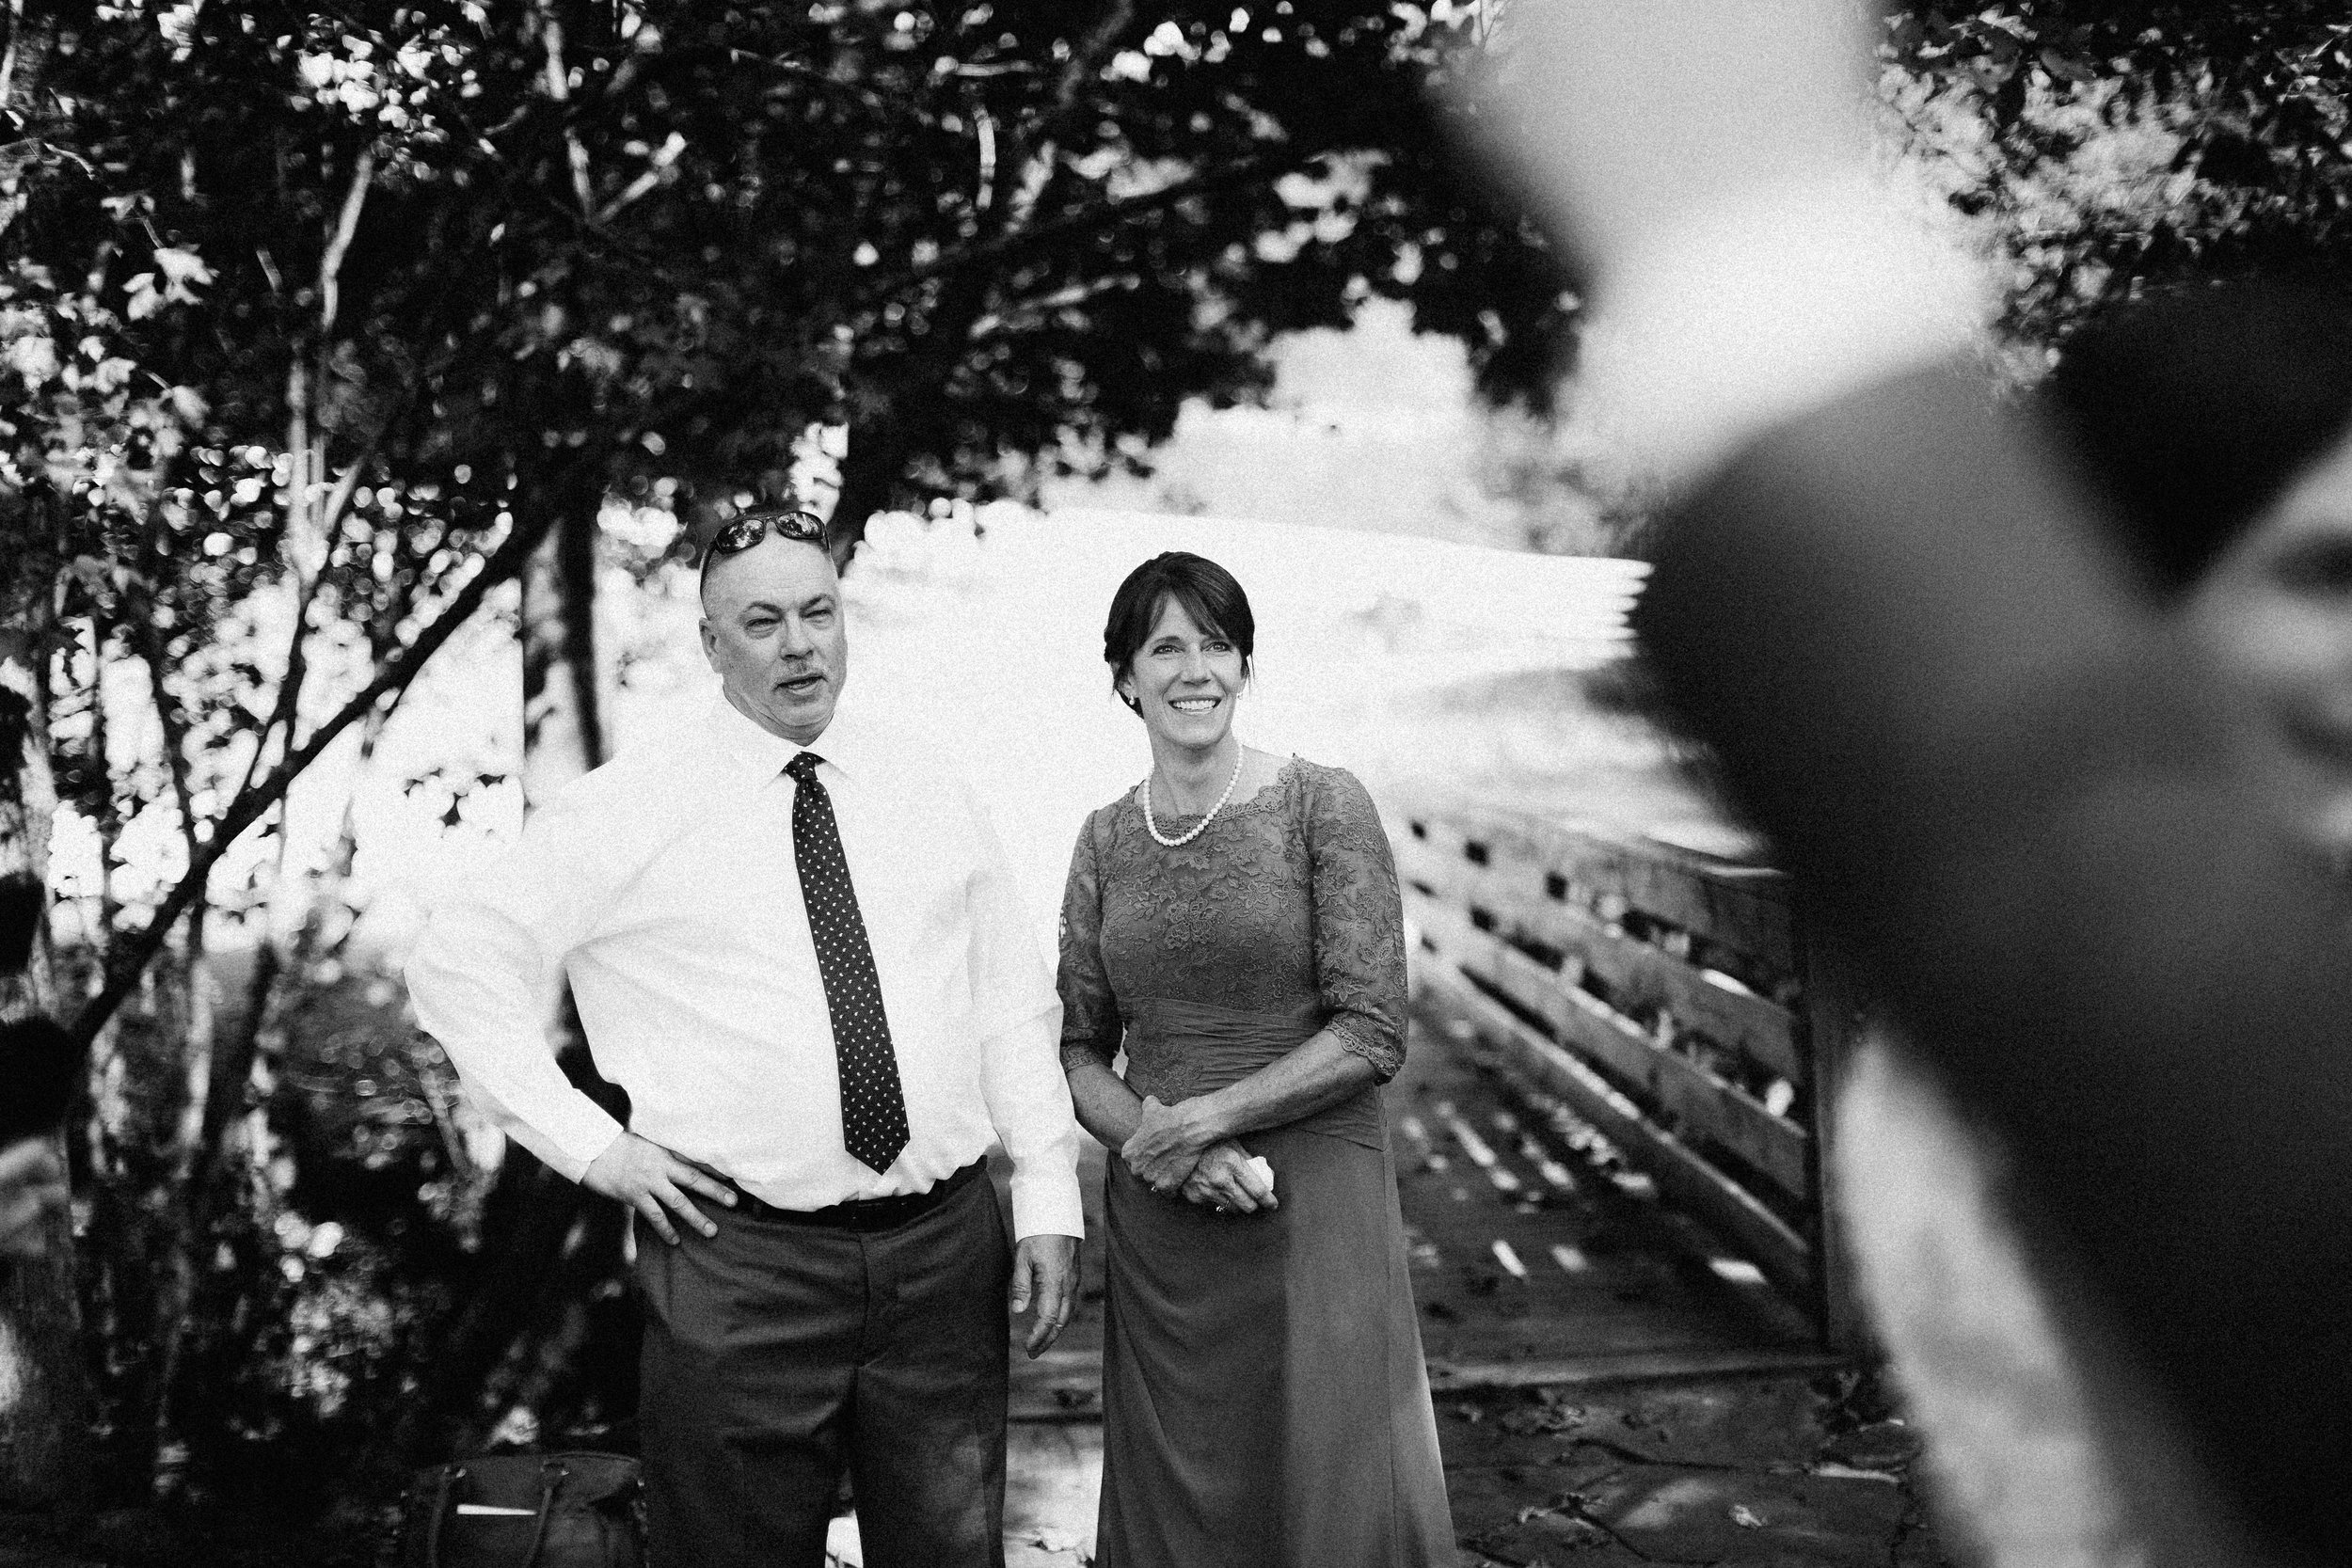 cleveland_georgia_mountain_laurel_farm_natural_classic_timeless_documentary_candid_wedding_emotional_photojournalism_river_west_1301.jpg